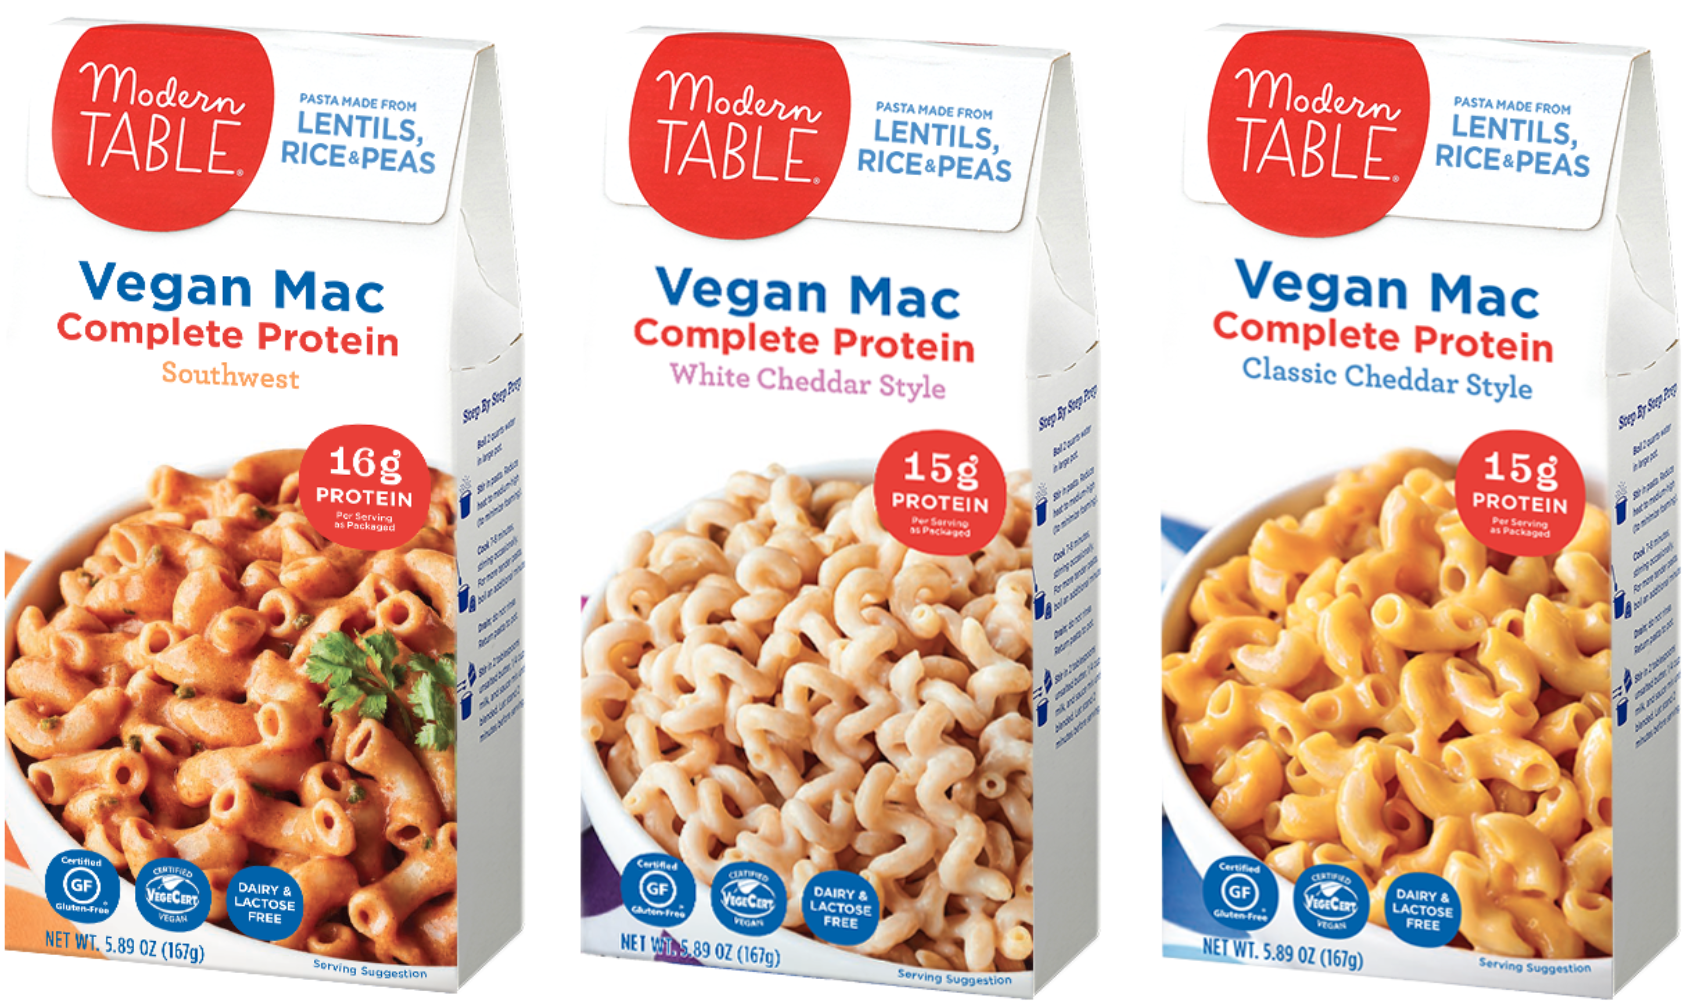 Modern Table's Vegan Mac comes in three flavors—Southwest, Classic Cheddar Style, and White Cheddar Style